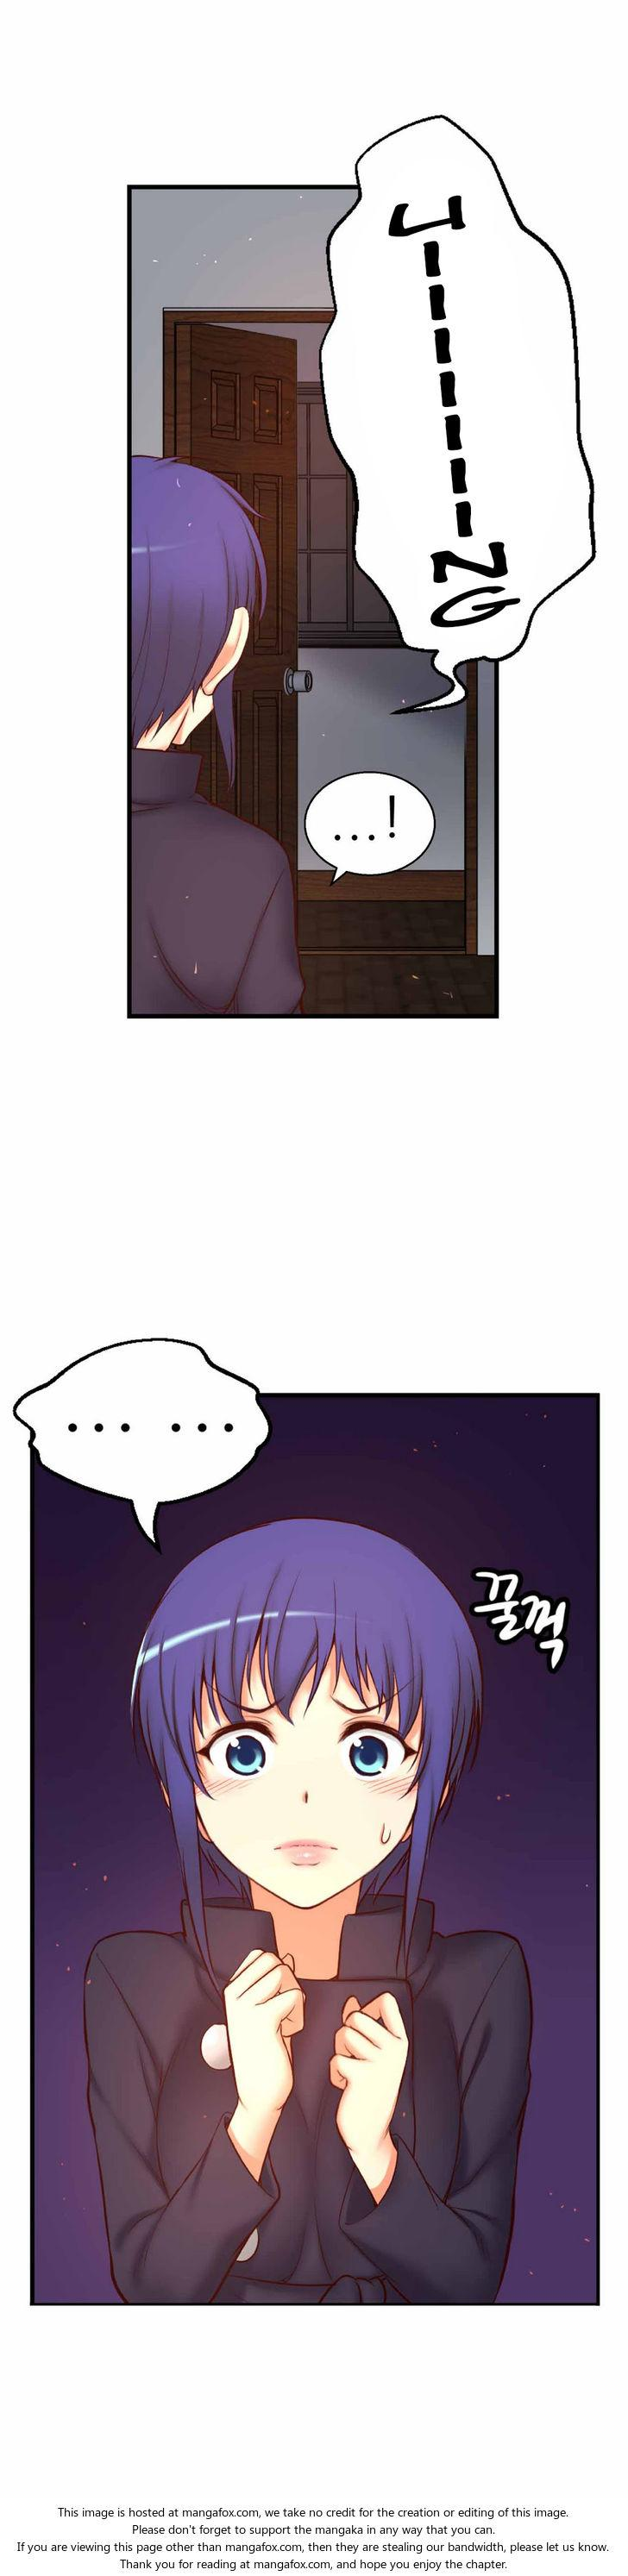 [Donggul Gom] She is Young (English) Part 1/2 1767